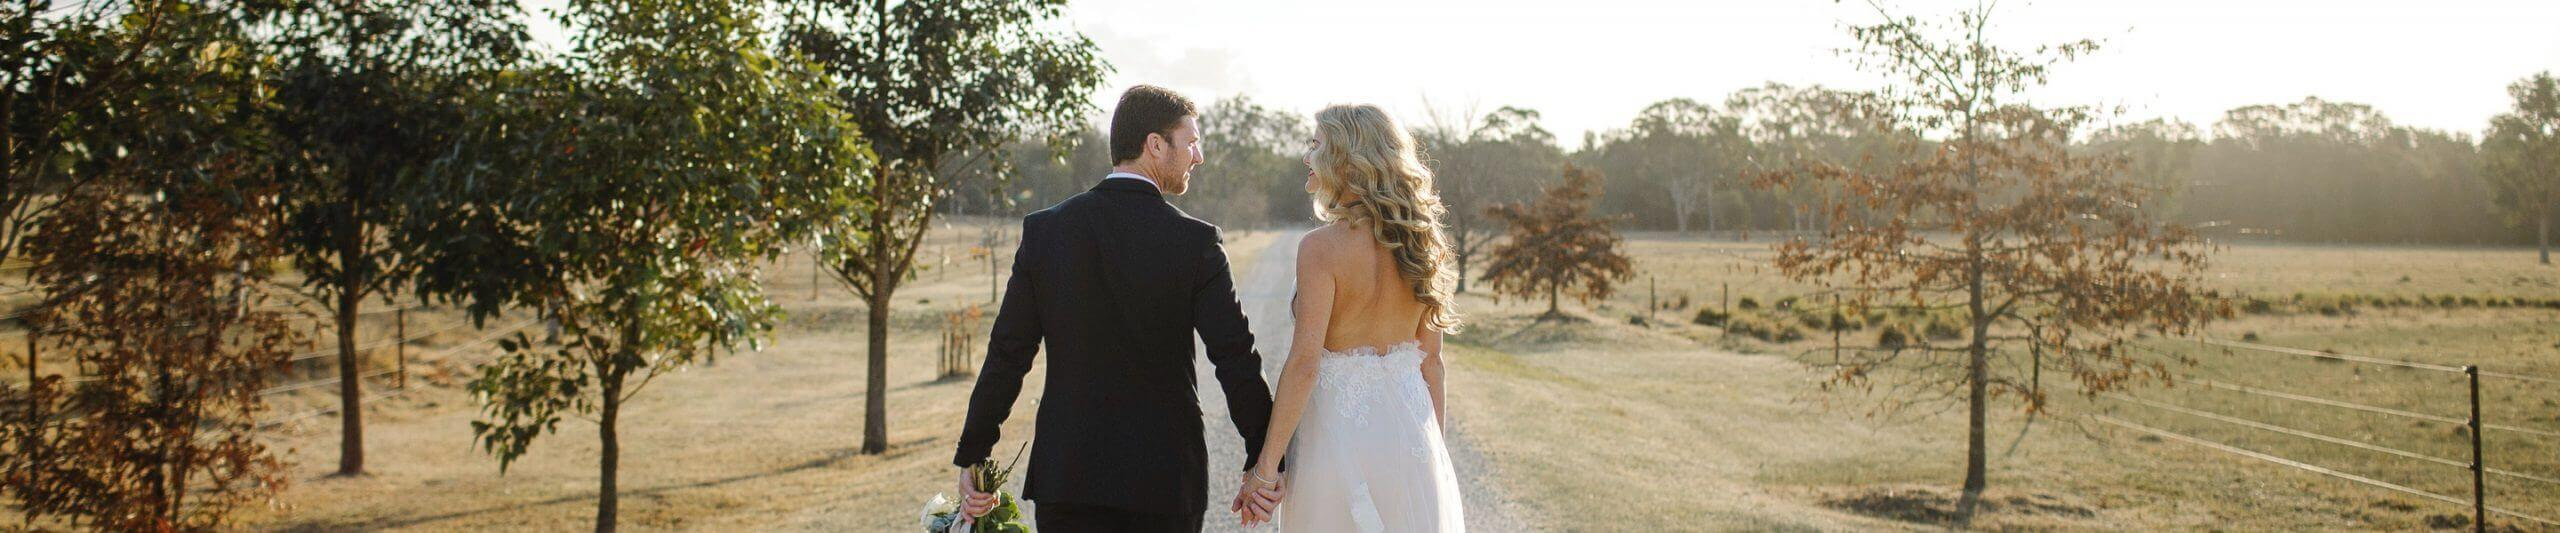 Couple getting married at wedding in Hunter Valley